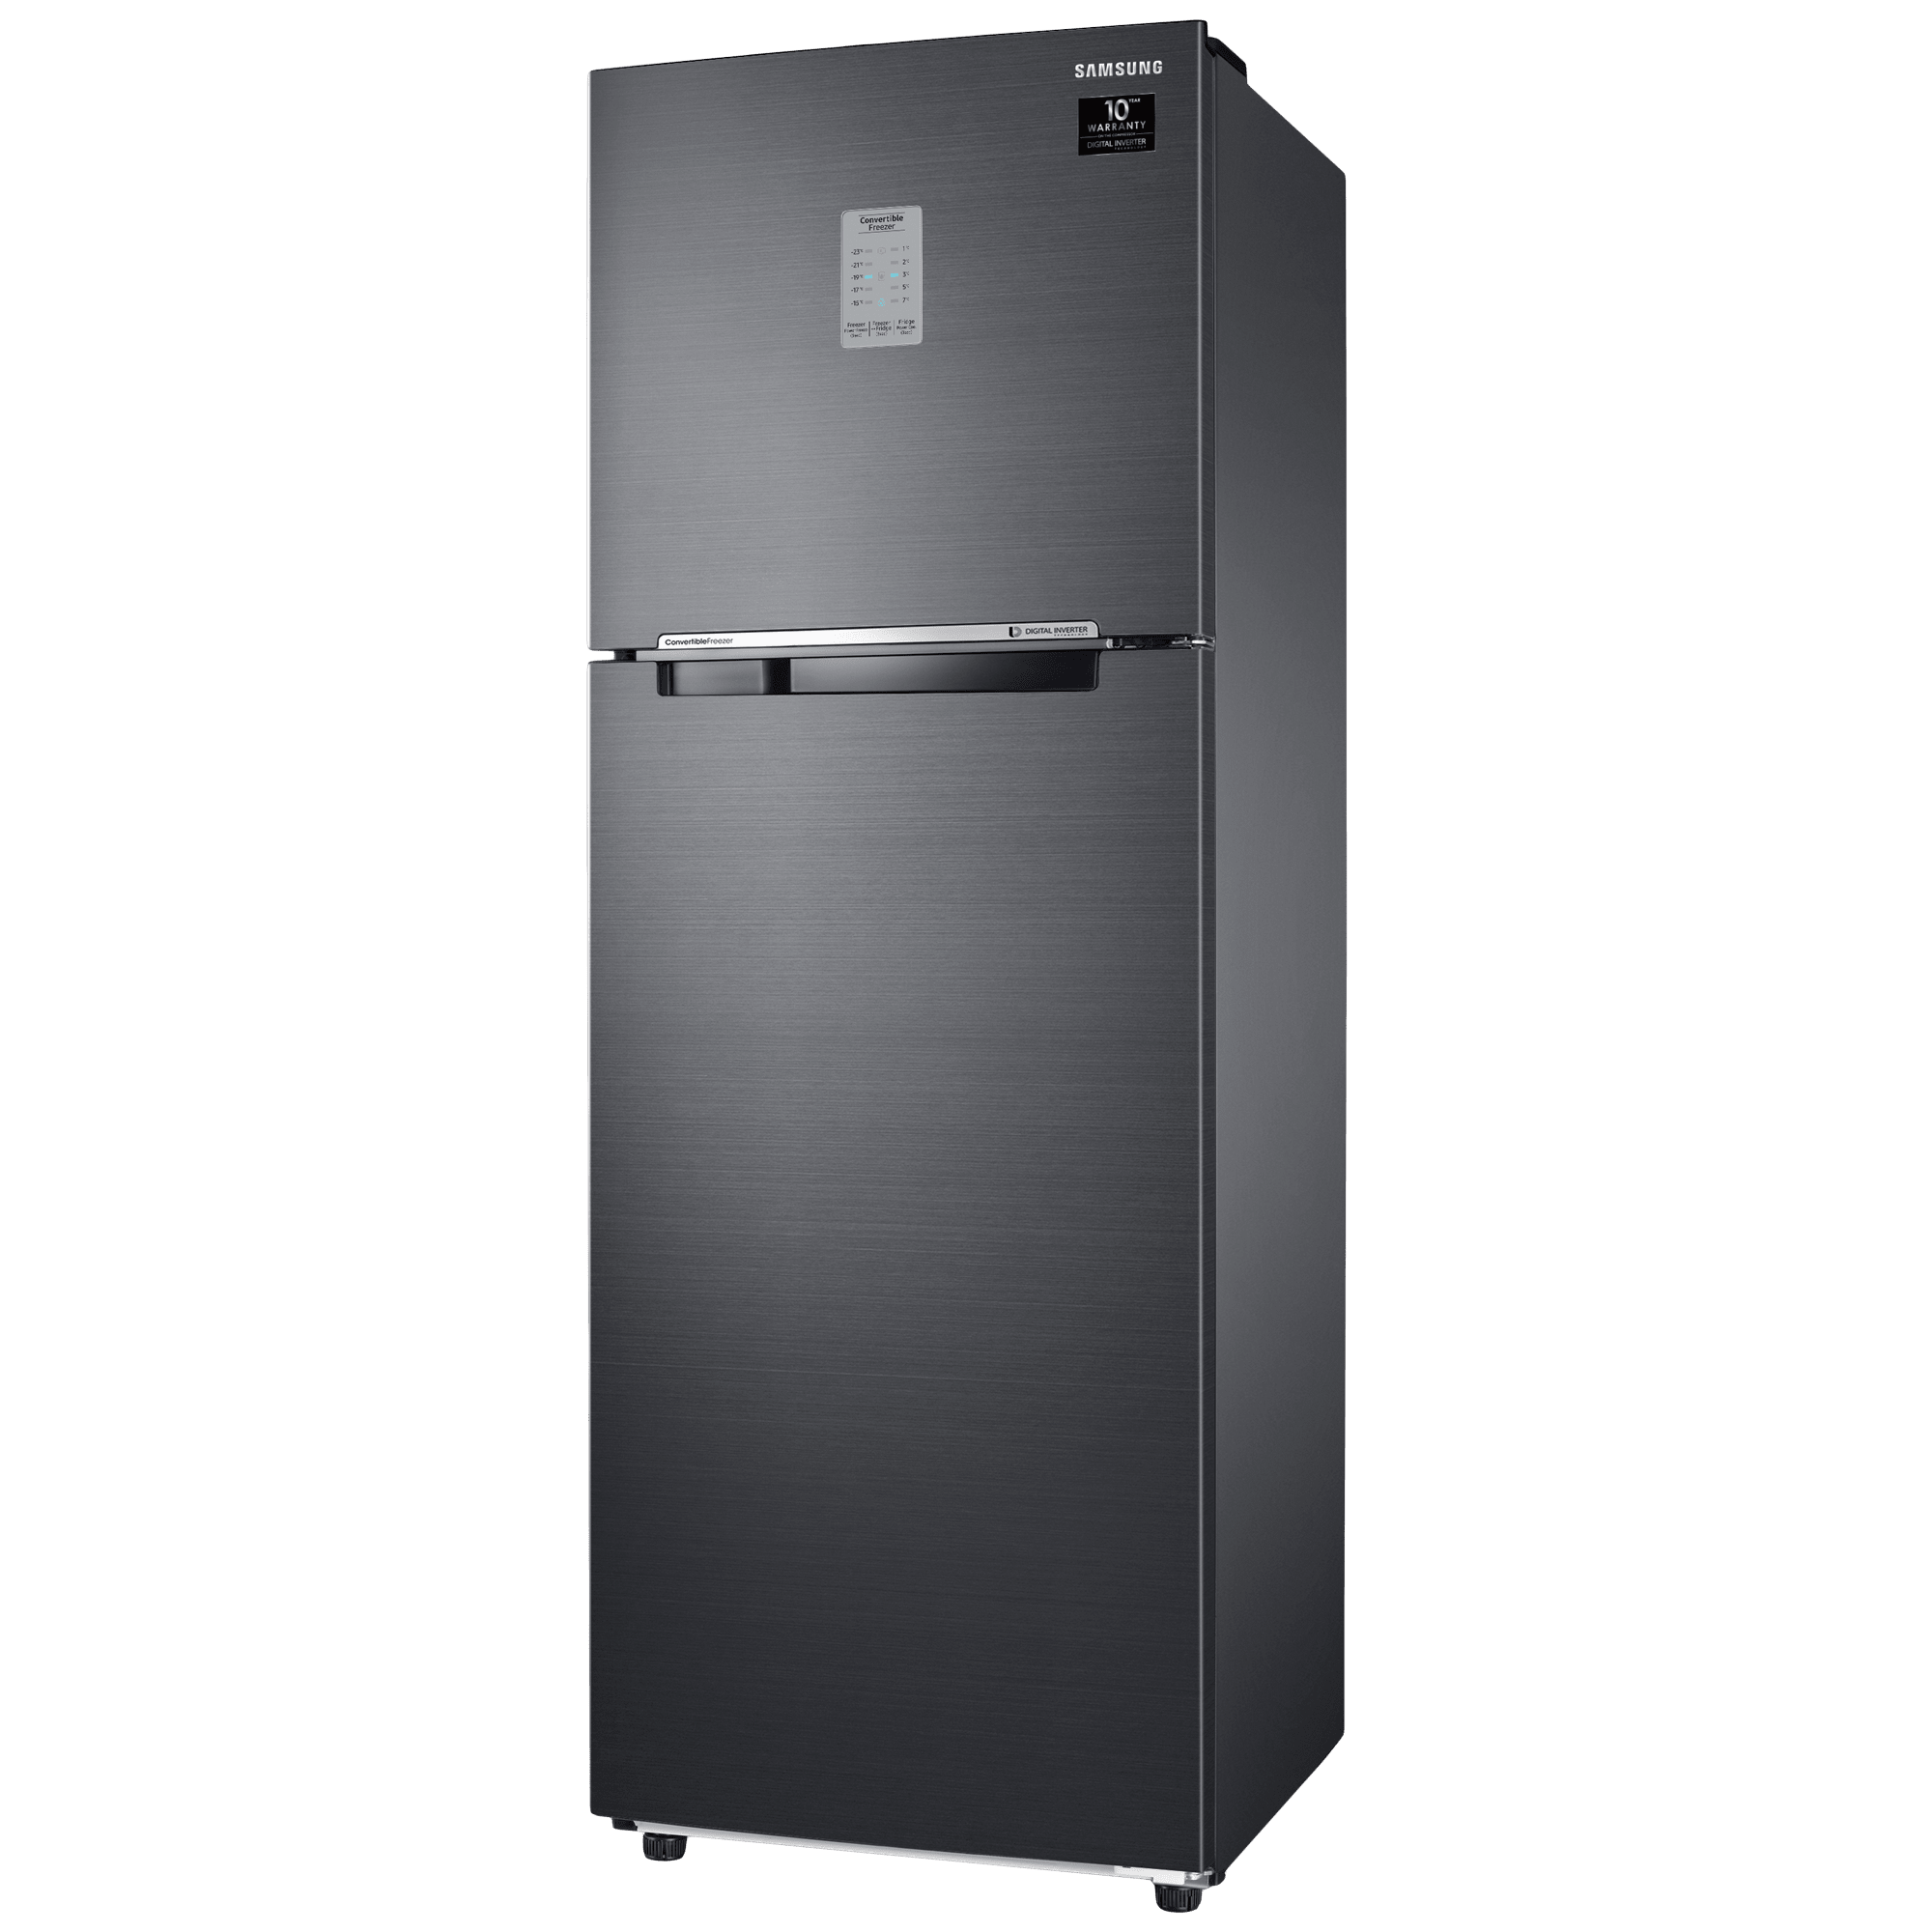 Samsung 275 Litres 3 Star Frost Free Inverter Double Door Refrigerator (Convertible, RT30A3743BX/HL, Luxe Black)